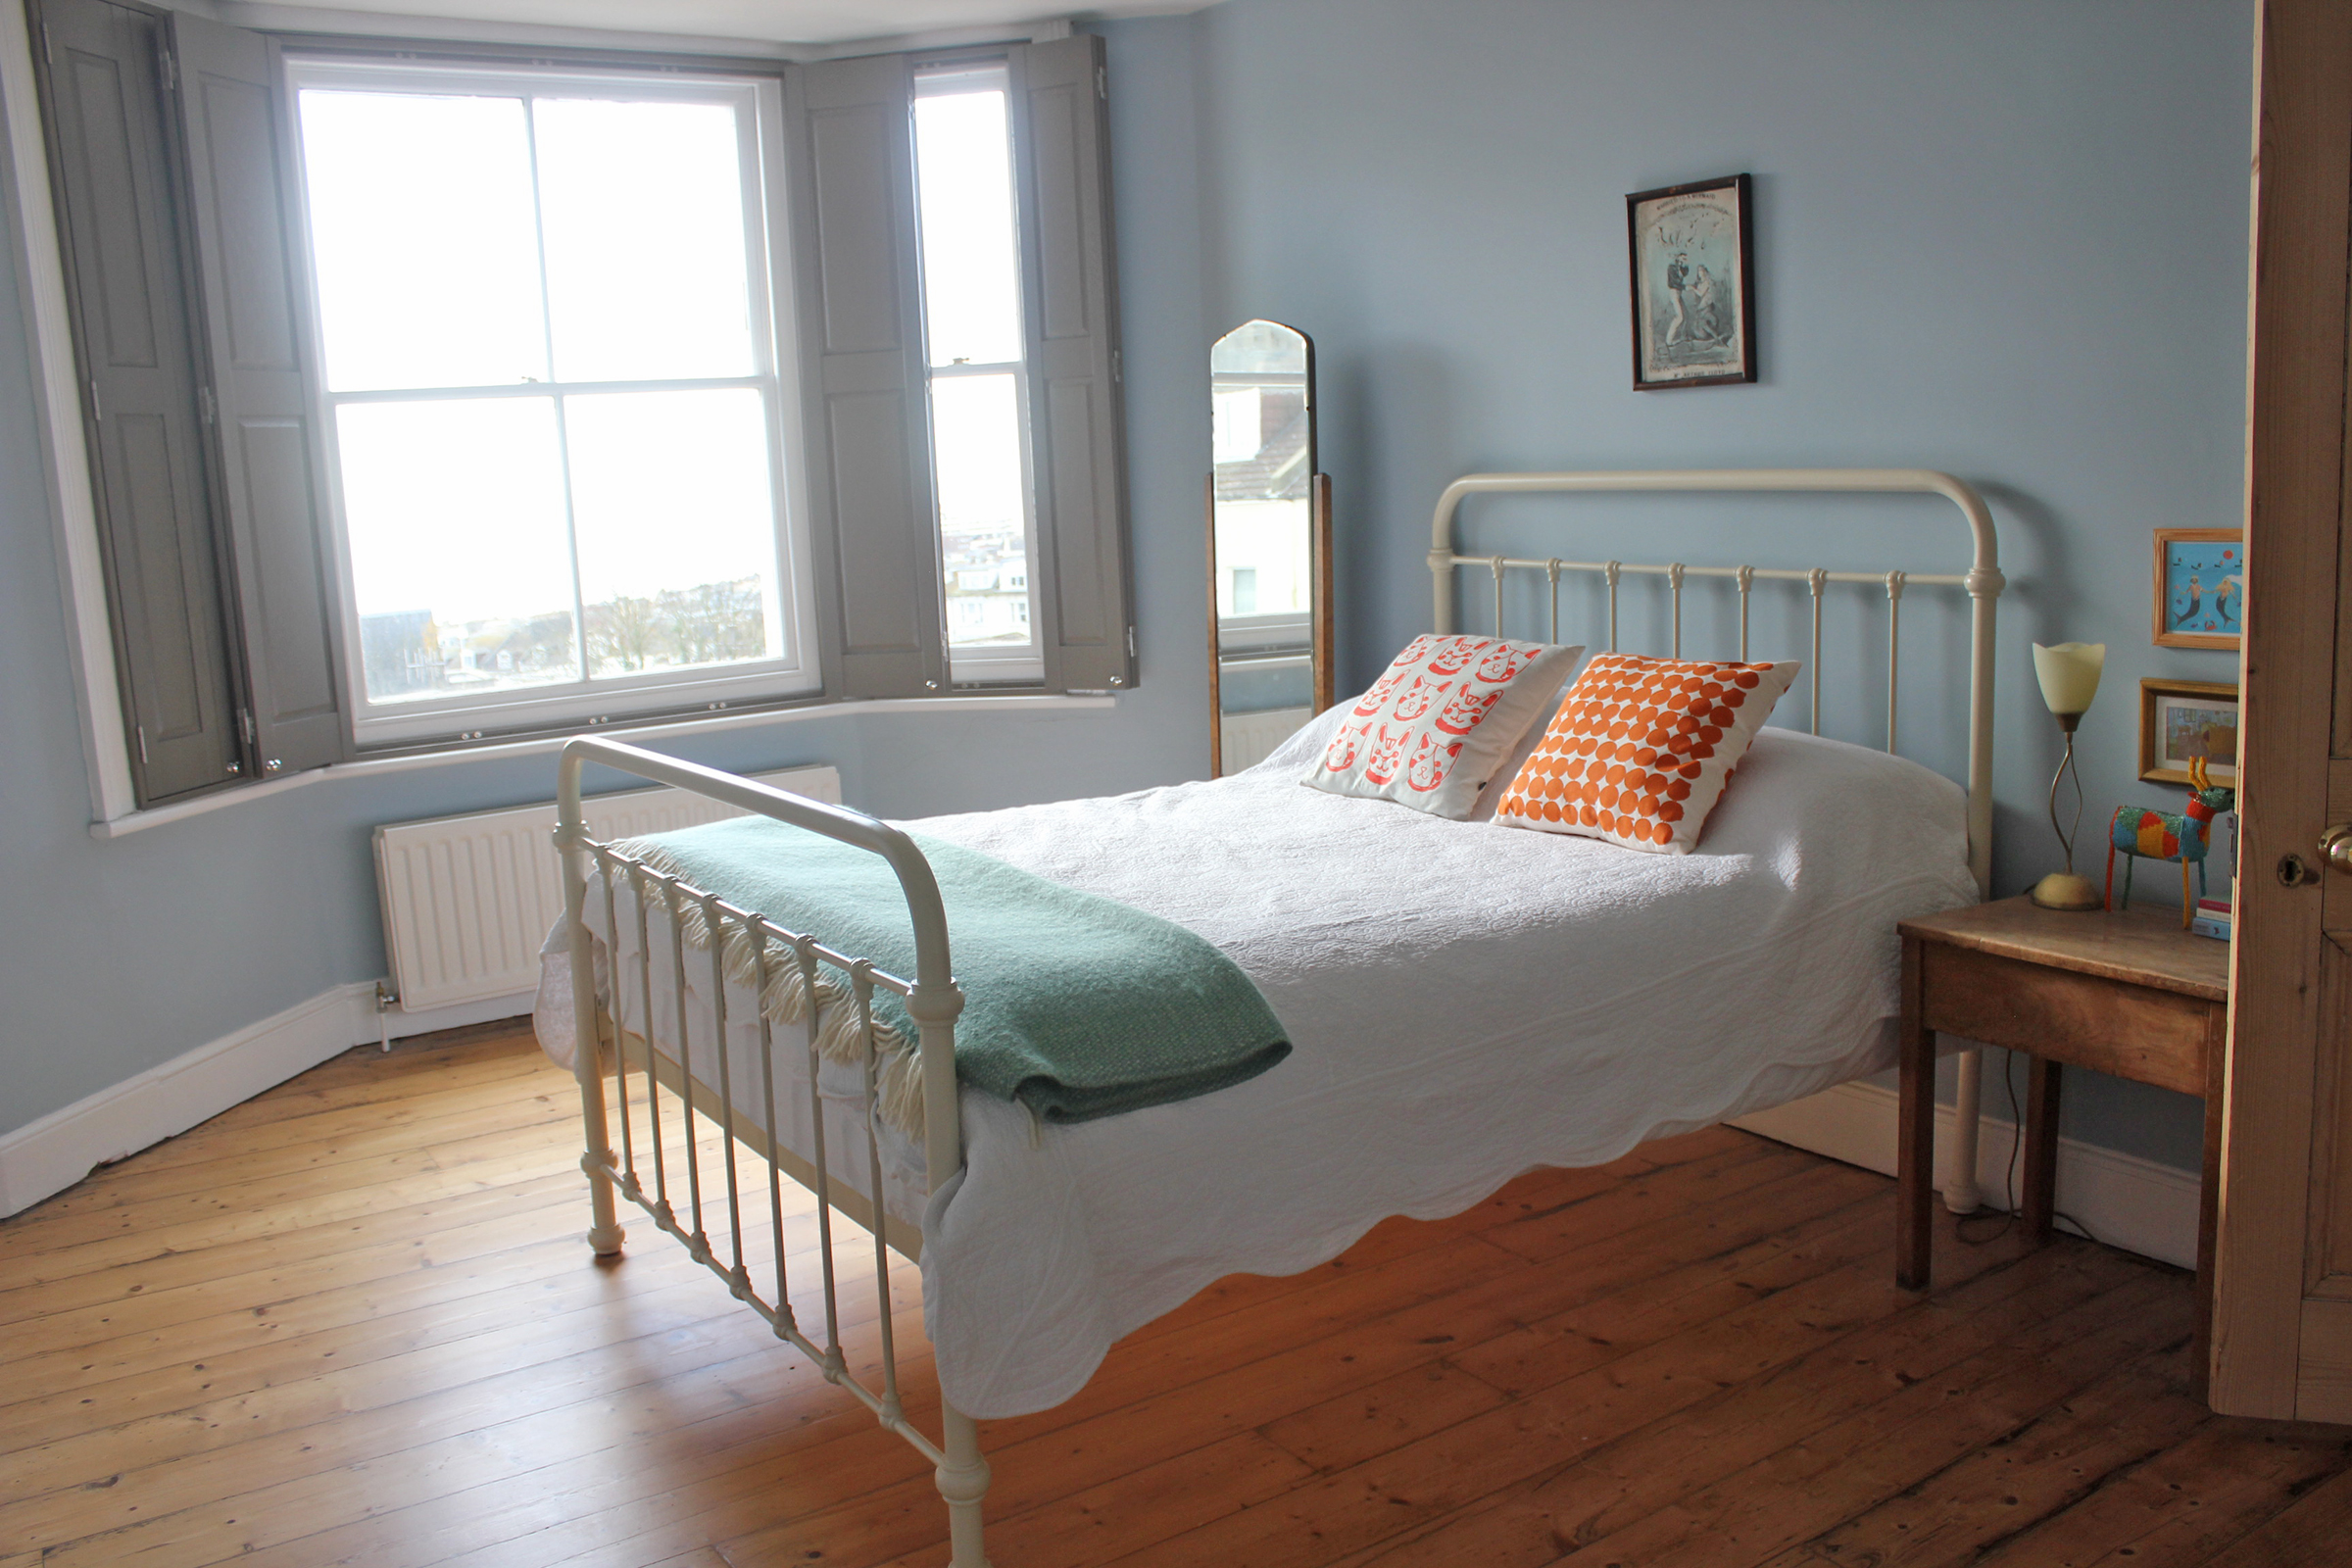 The Blue Bedroom. This room definitely has the best view in the house. Our friends love staying over in this room - it has a great seaside holiday feel. It overlooks the sea and Marine Court (a 1930's building made to look like a ship). The bed is from  Feather & Black  and the walls are painted Parma Gray from Farrow & Ball.